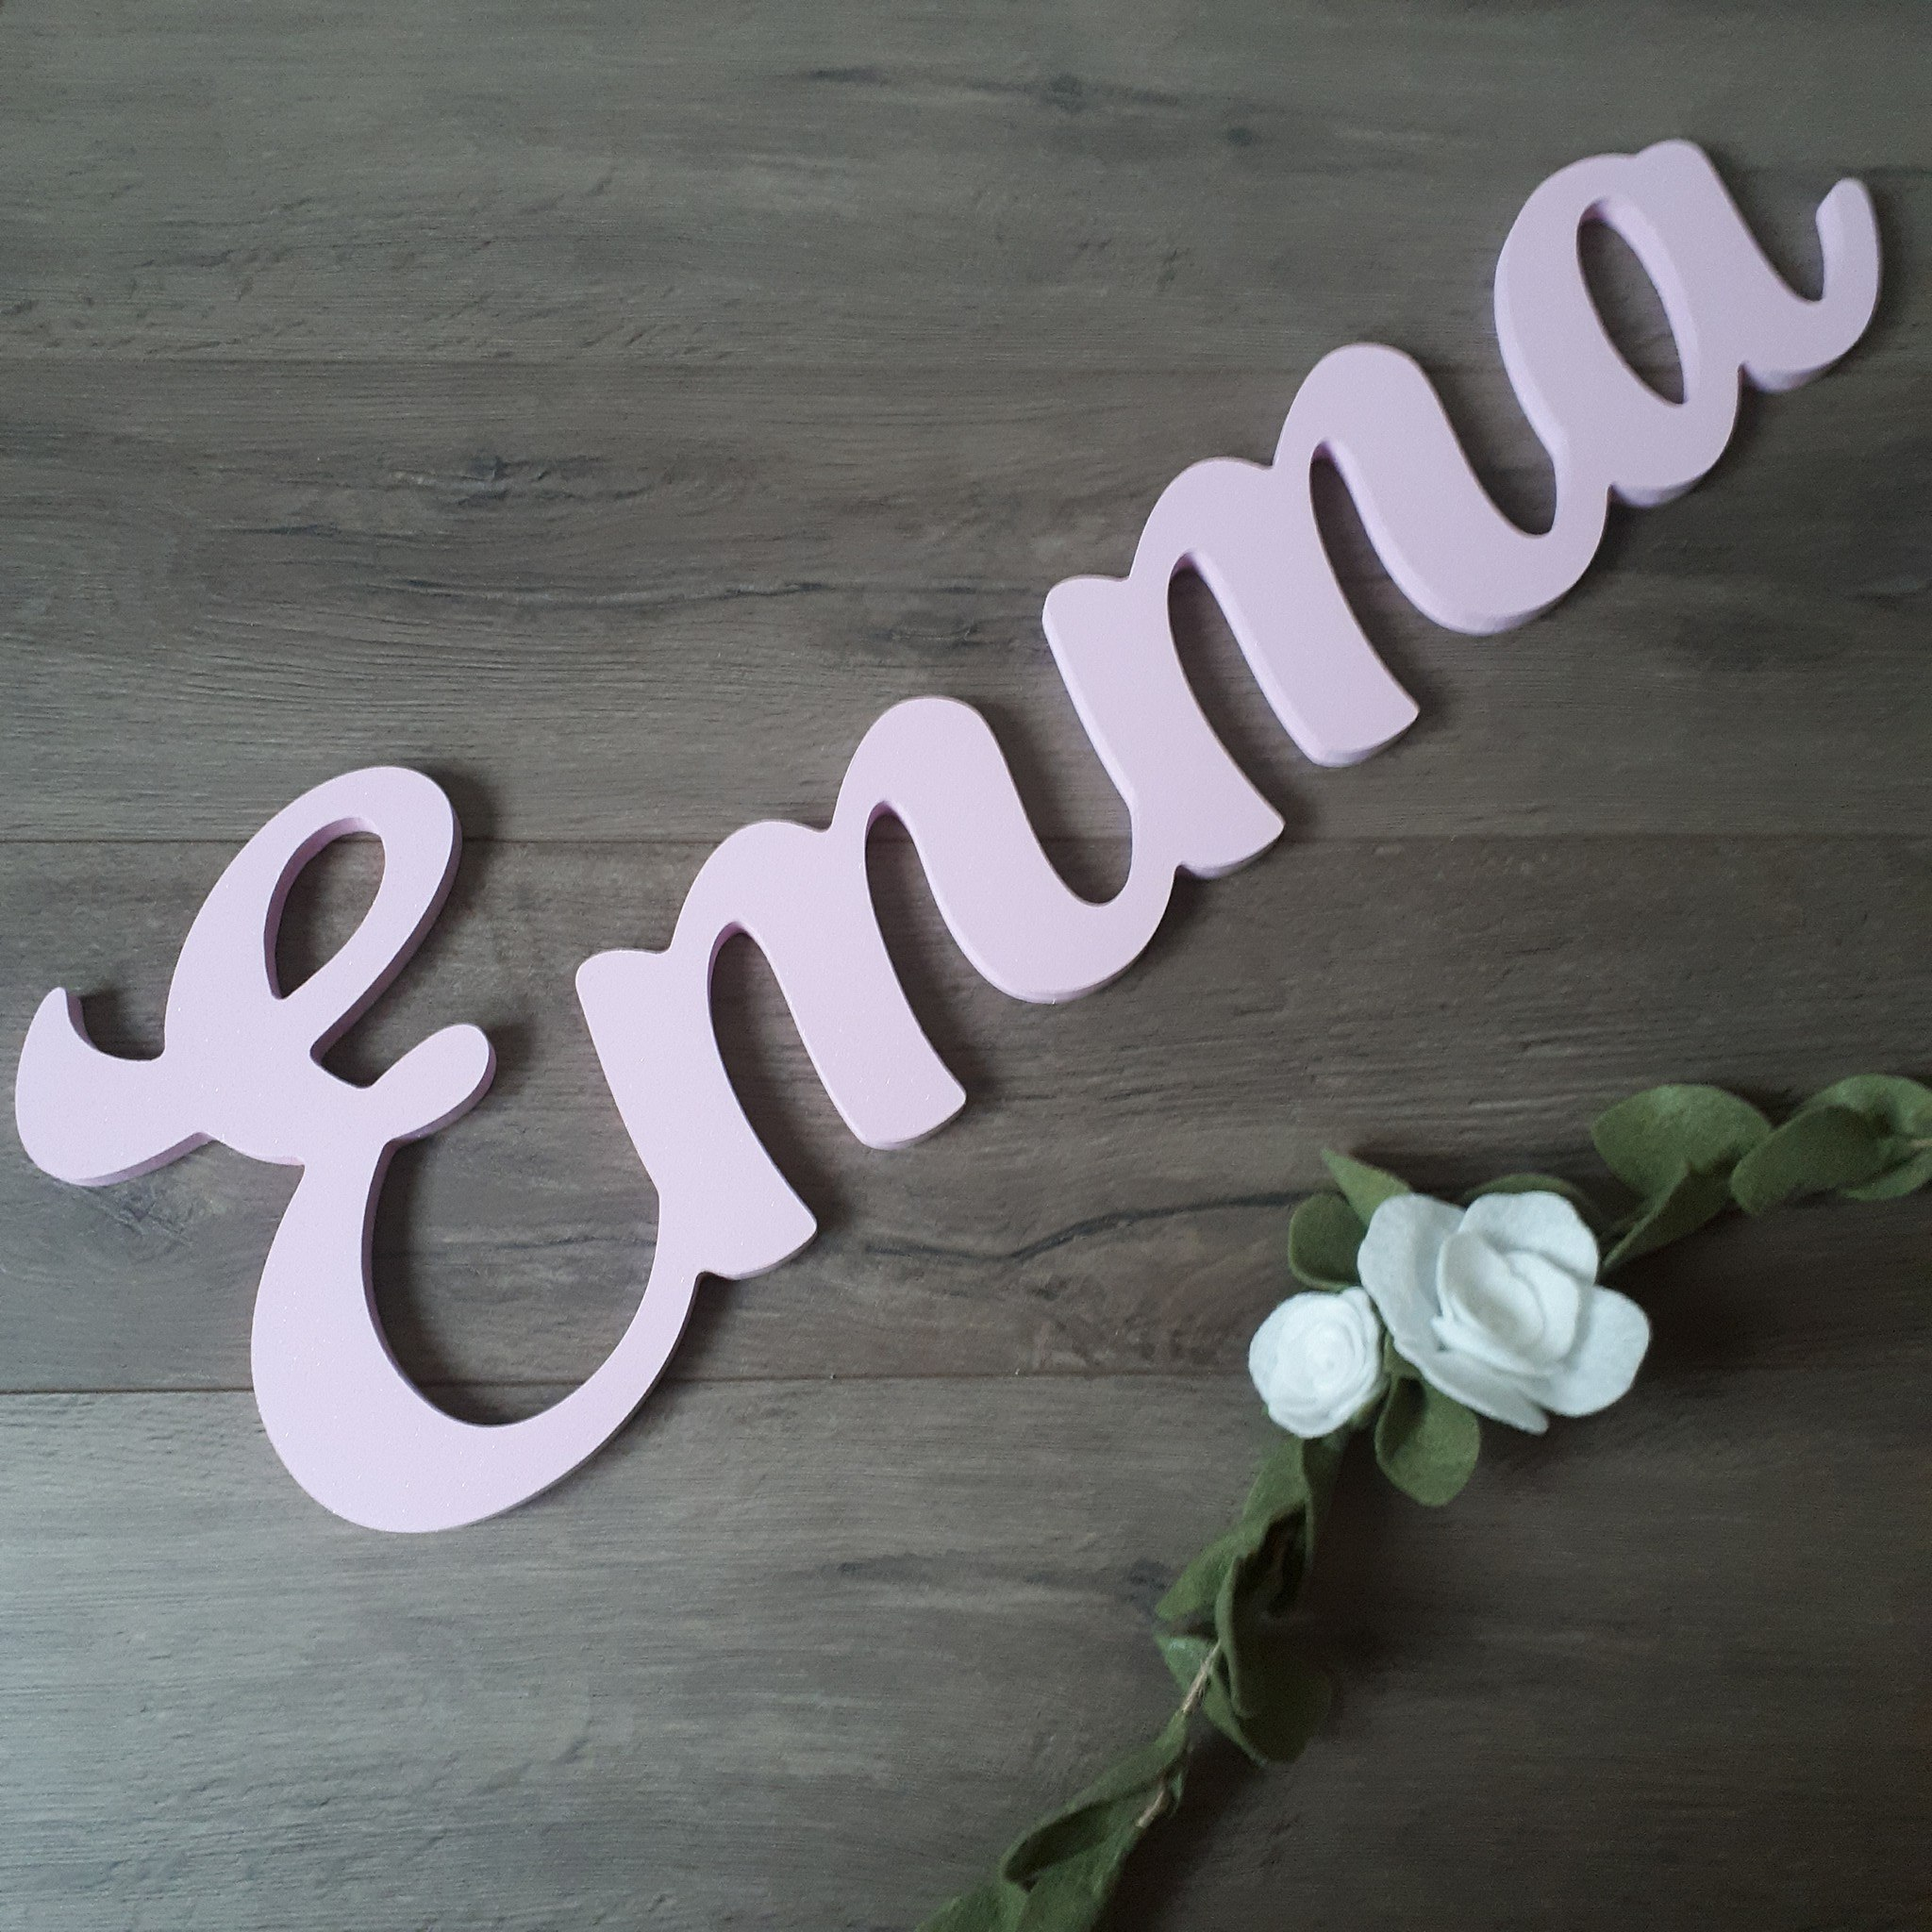 Customizable Wall Name - Emma